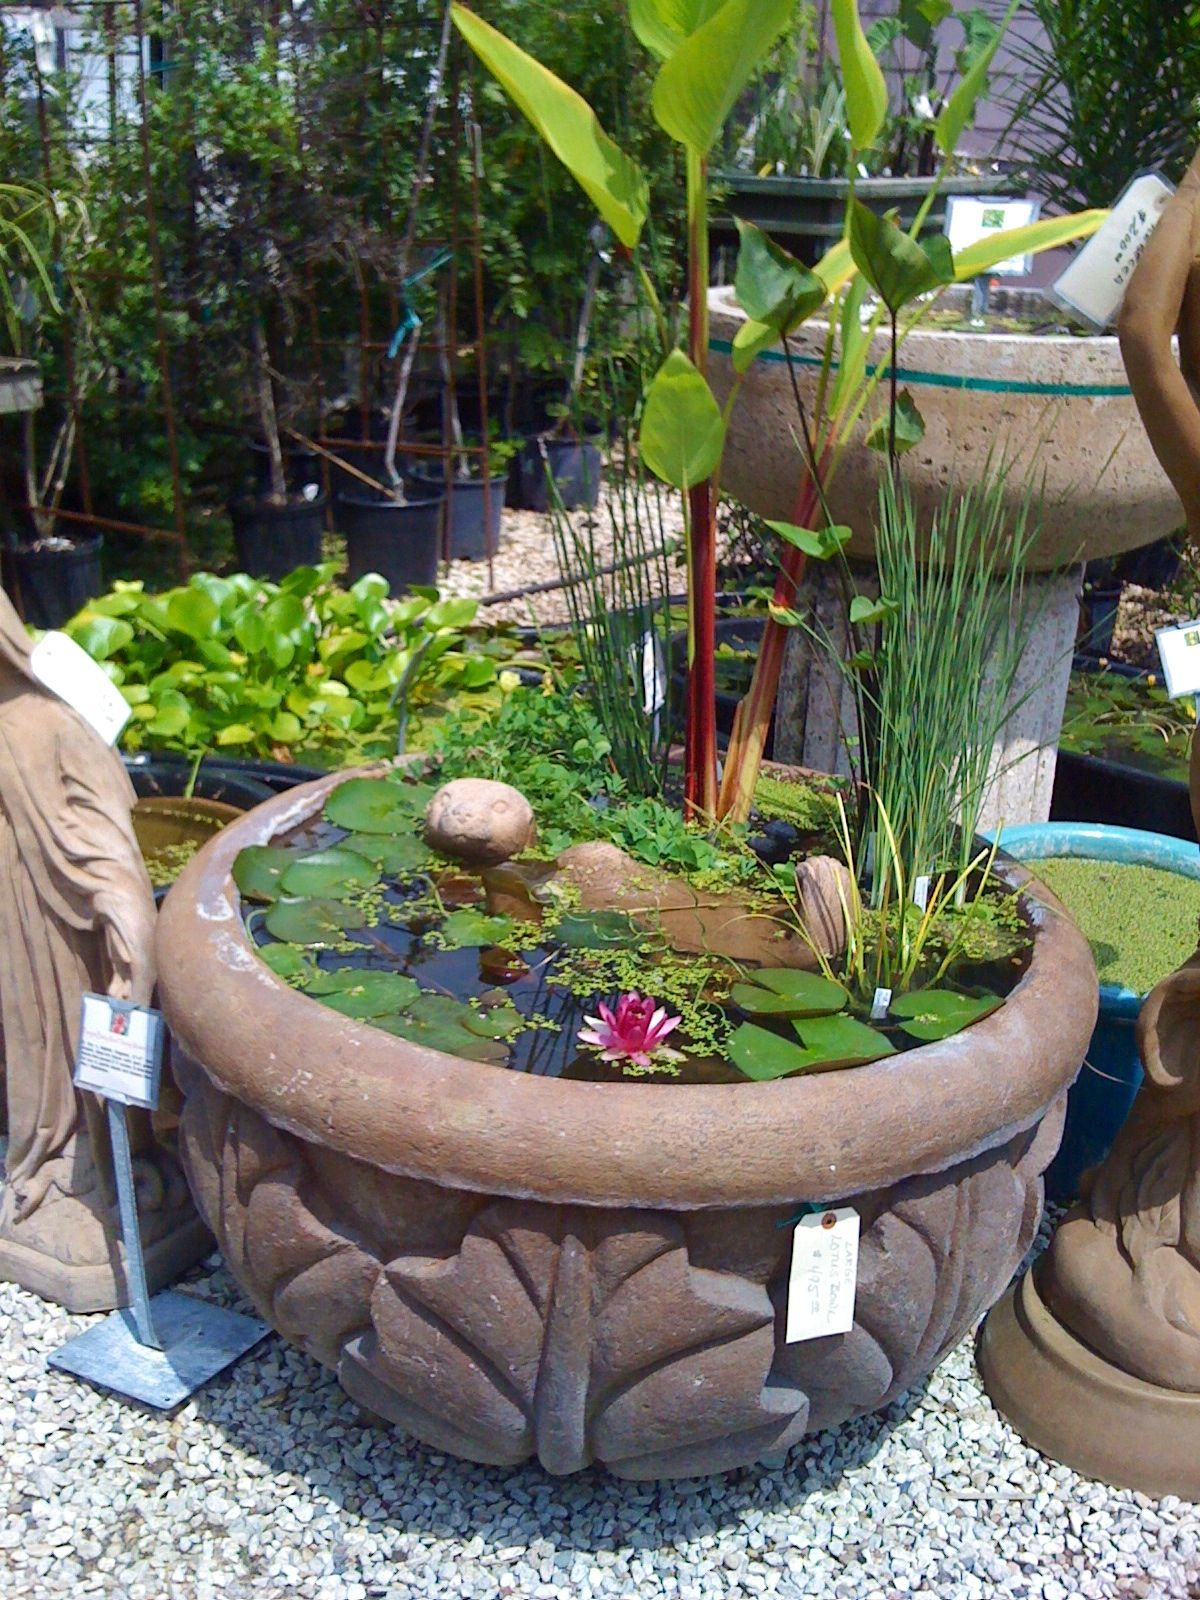 A Small Pond For A Patio Or Yard. Another View Of The Beautiful Lotus Bowl